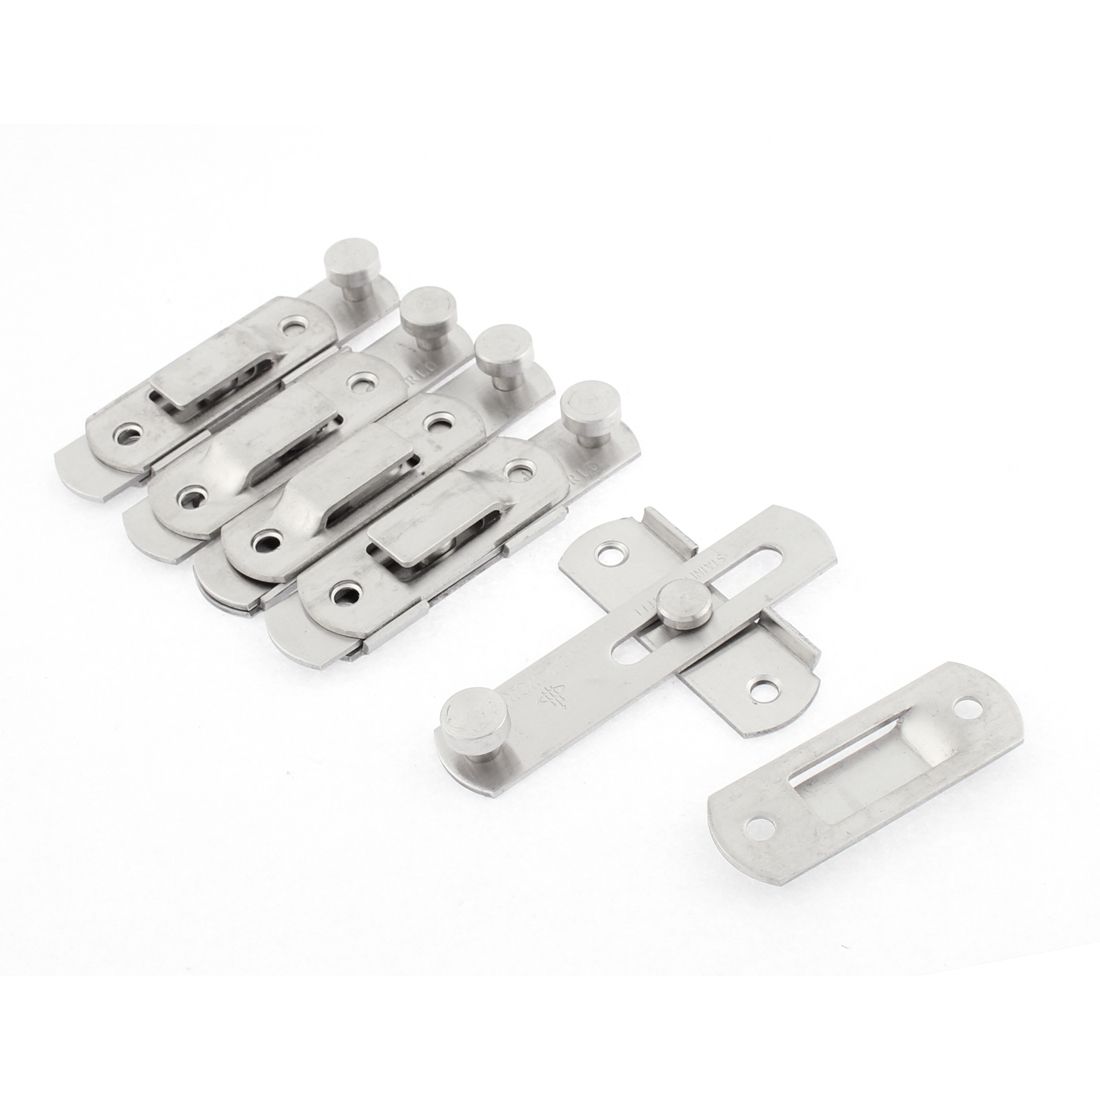 Home Safety Door Chain Restrictor Lock Guard Latch 4 Inch Length 5pcs